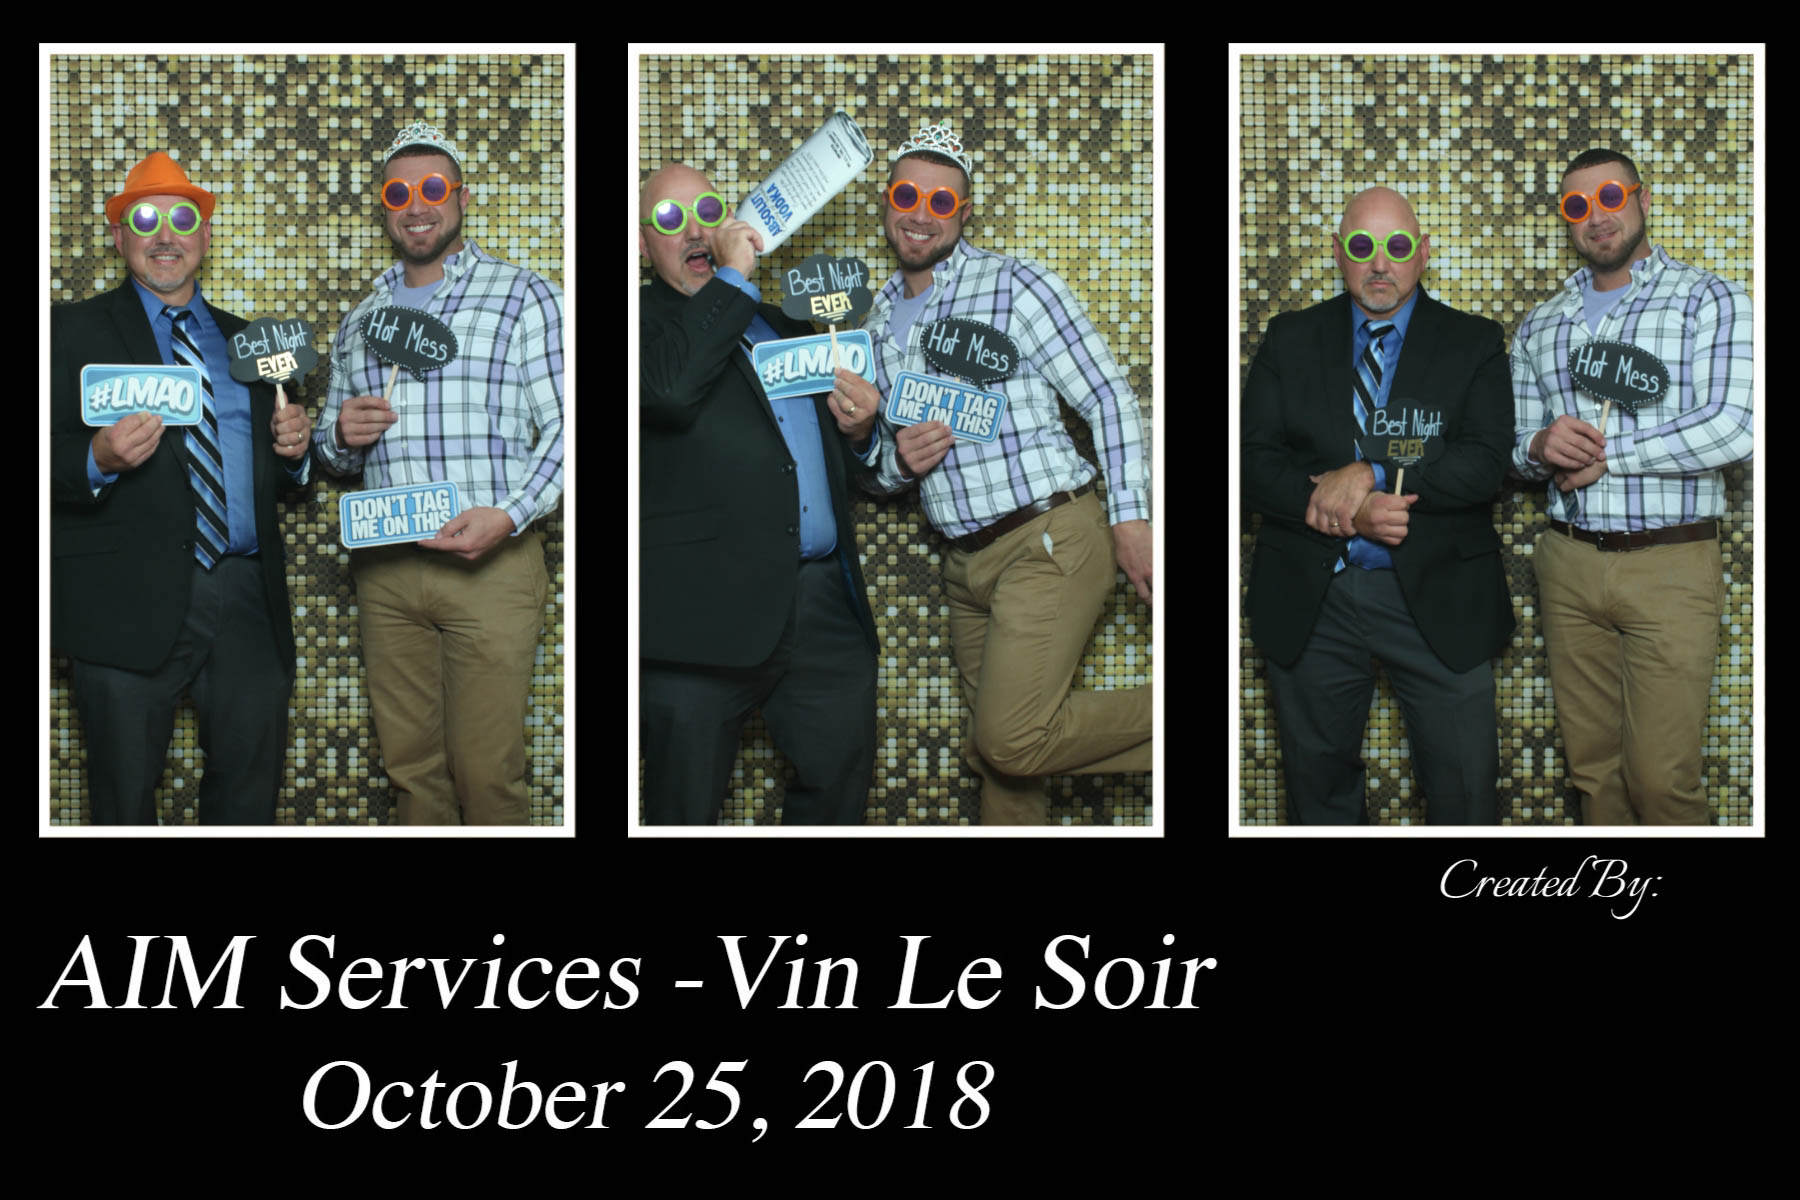 Vin Le Soir to benefit AIM Services, Inc. photobooth picture